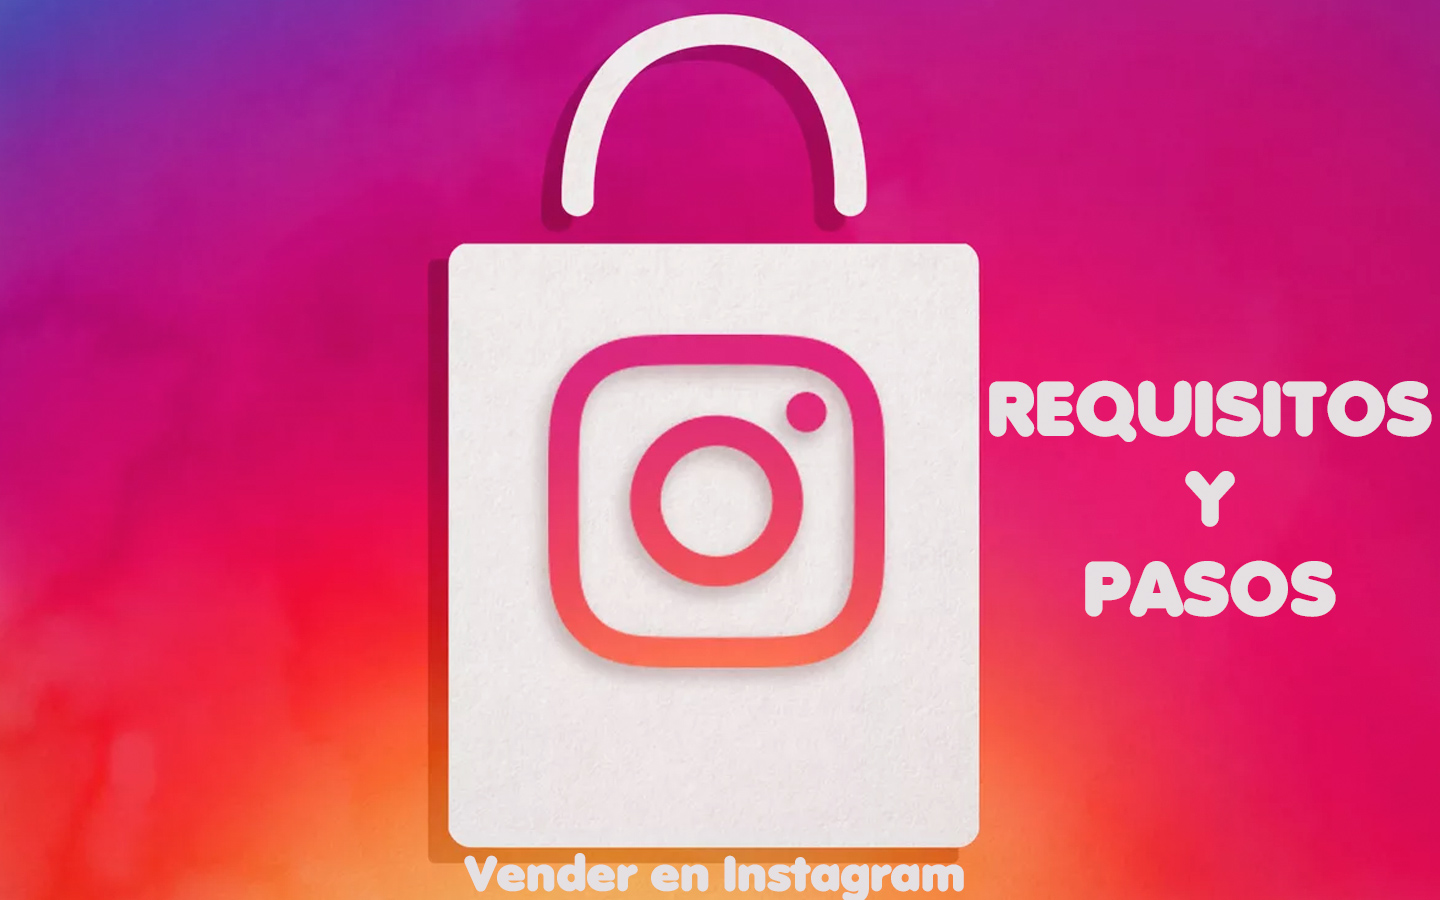 Vender en Instagram: requisitos y pasos